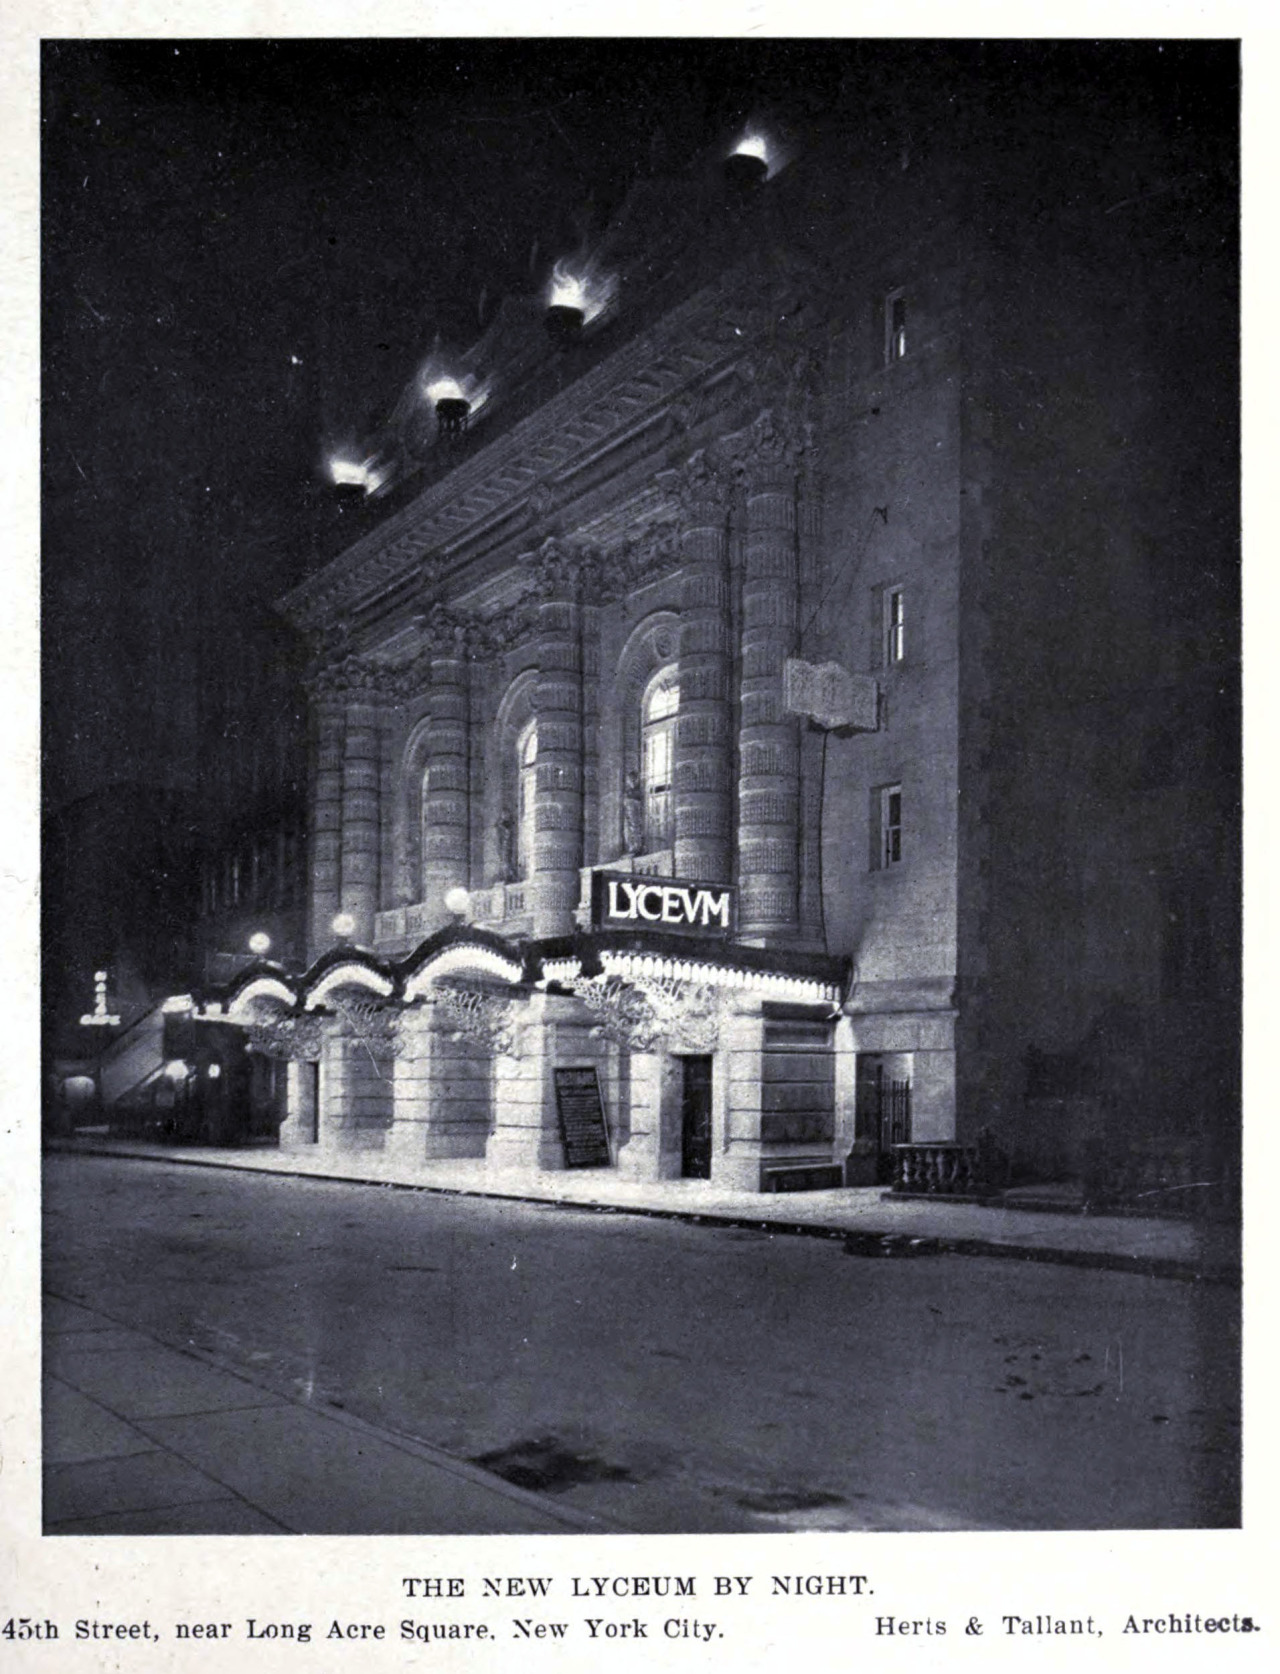 The Lyceum Theatre, New York City